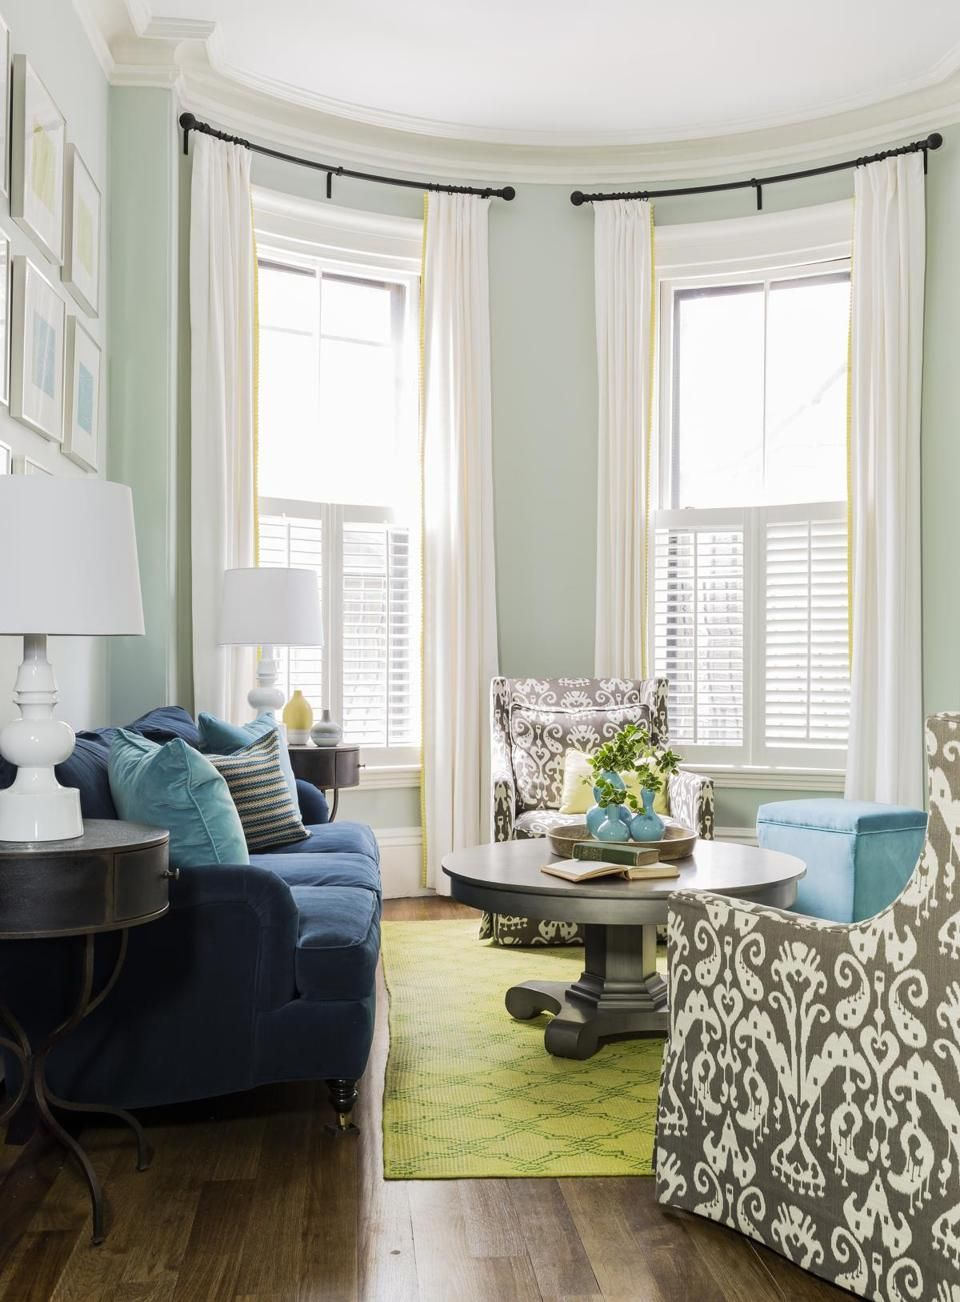 living room with light green carpet home decorating ideas curtains vertical in the south end boston globe spaces navy blue sofa gray ikat chairs teal walls lime painted coffee table ivory